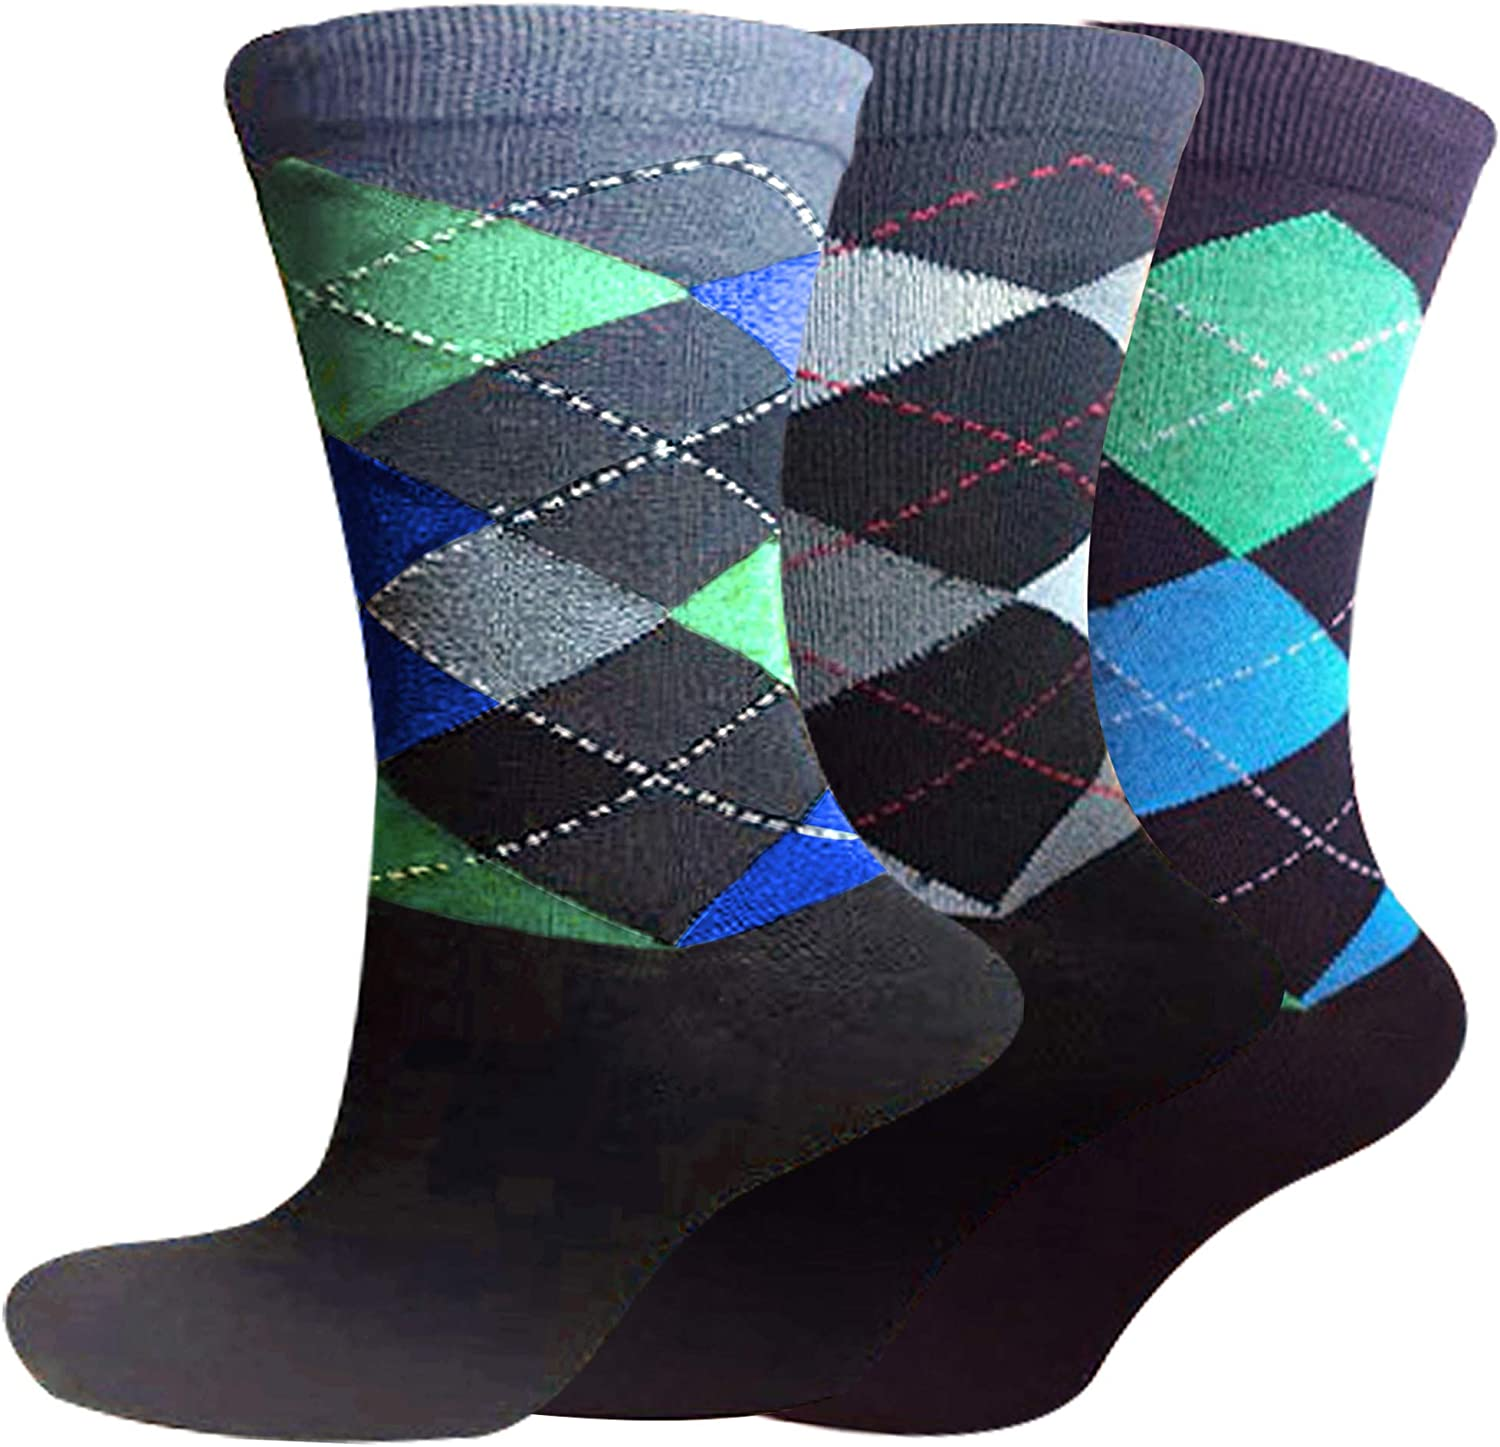 Crew Cotton Blend Socks Pack 6 Mens Pattern Dress Colorful Assorted Patterns Breathable